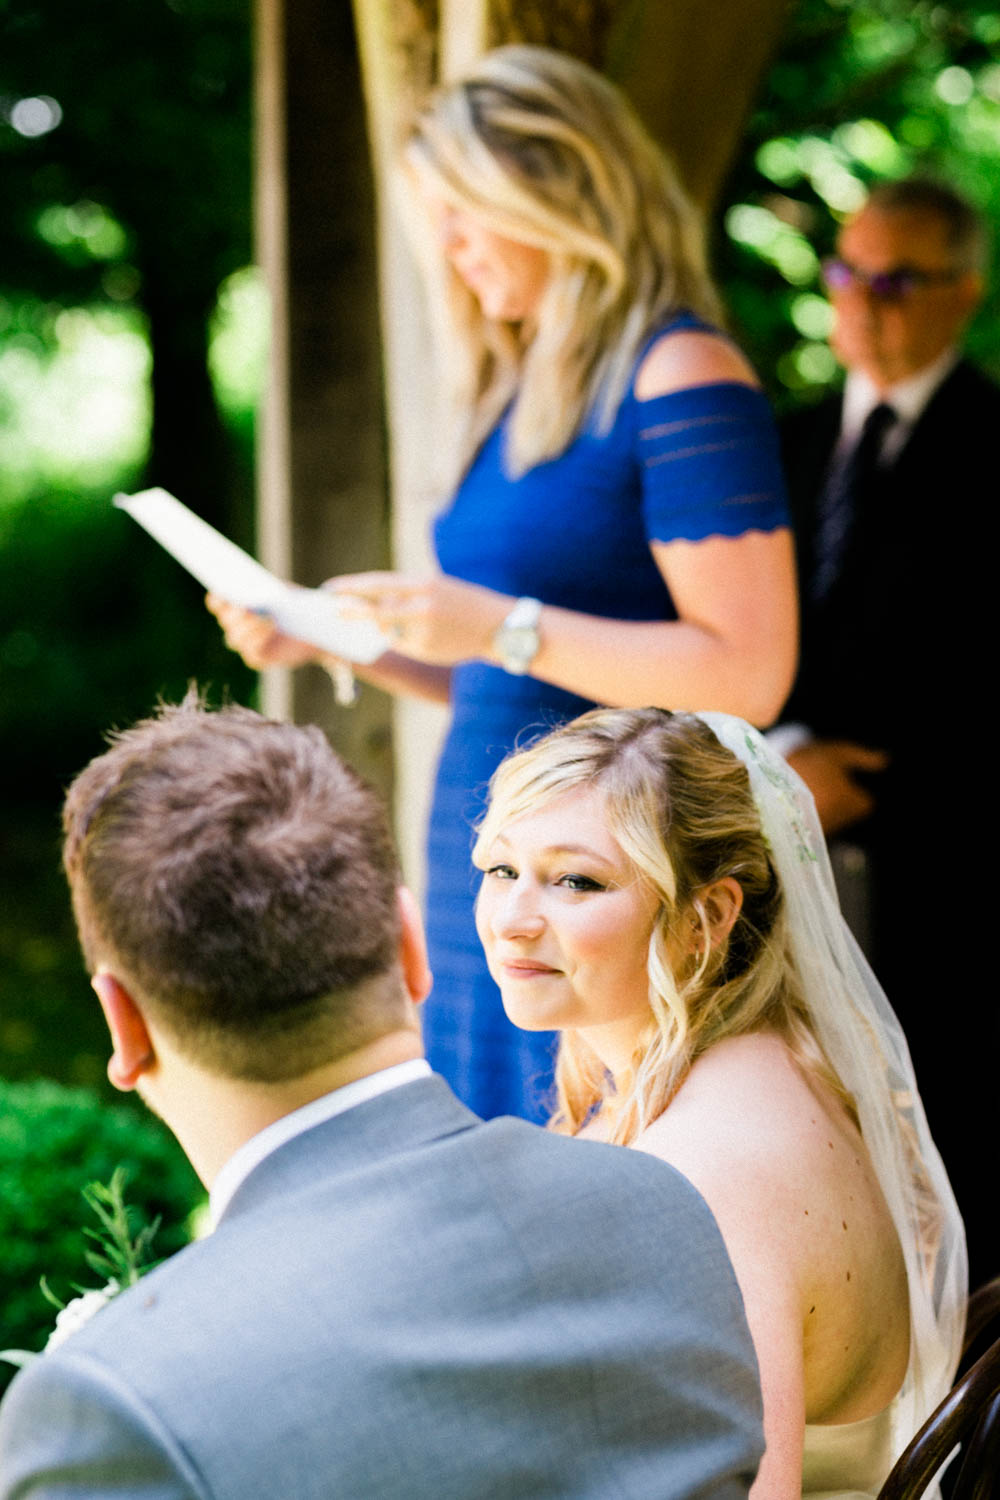 Special-Day-Photography-Cripps-Barn-Cirencester-Gloucester-Barn-Wedding-bride-exchanges-looks-during-speeches.jpg